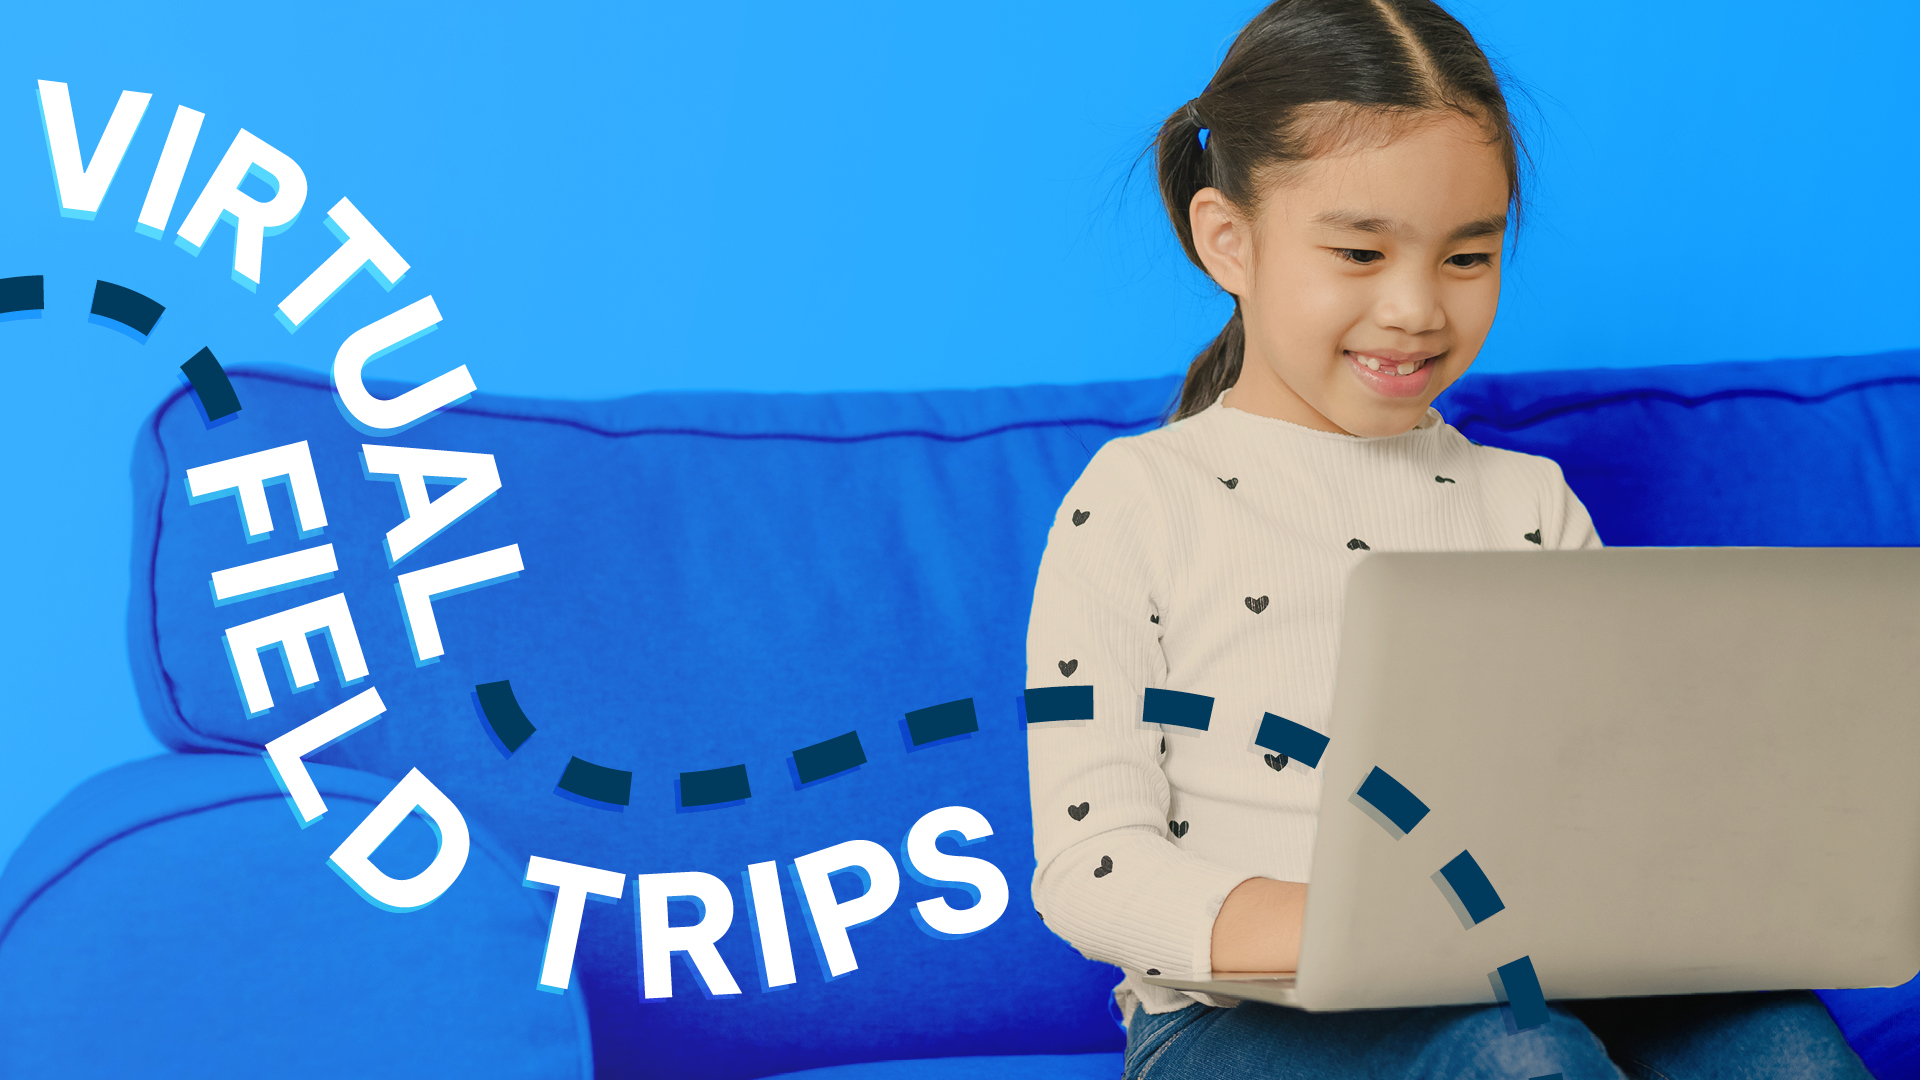 """A graphic of a child smiling and looking at a laptop with the text """"Virtual Field Trips"""" written over the image"""